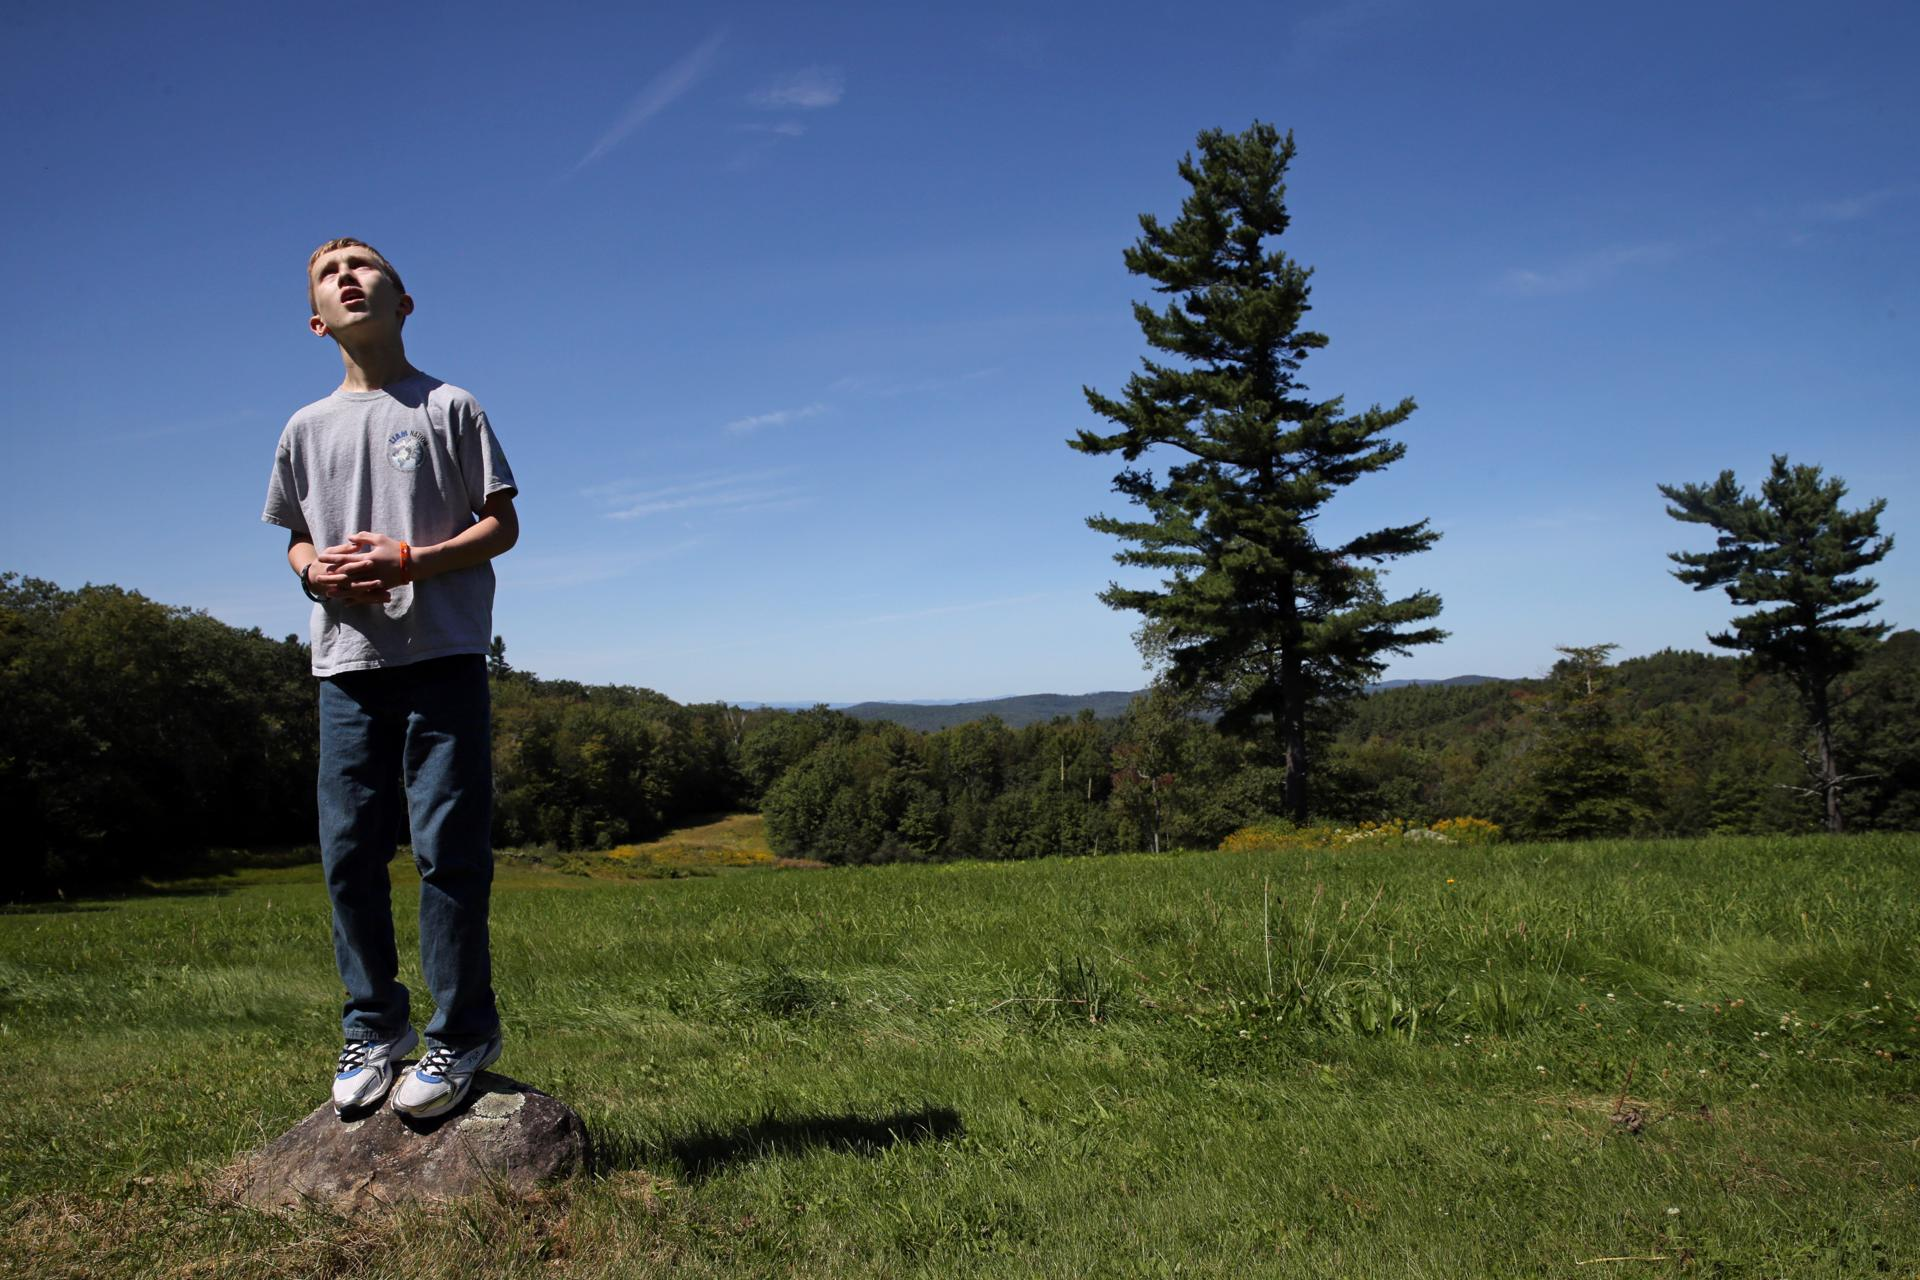 Nelson, NH- September 02, 2017: Connor Biscan stood atop a small rock and searched the sky for the balloons he had lost at a family gathering in Nelson, N.H., on Labor Day weekend last September. Connor had flown the balloons in an open field behind his great-grandfather's house. When the kite string broke and the balloons snagged on a tree, Connor became anxious. His mother, Roberta Biscan, praised him for remaining calm. As a baby, balloon was his first word. (Craig F. Walker/Globe Staff) section: metro reporter: kowalczyk